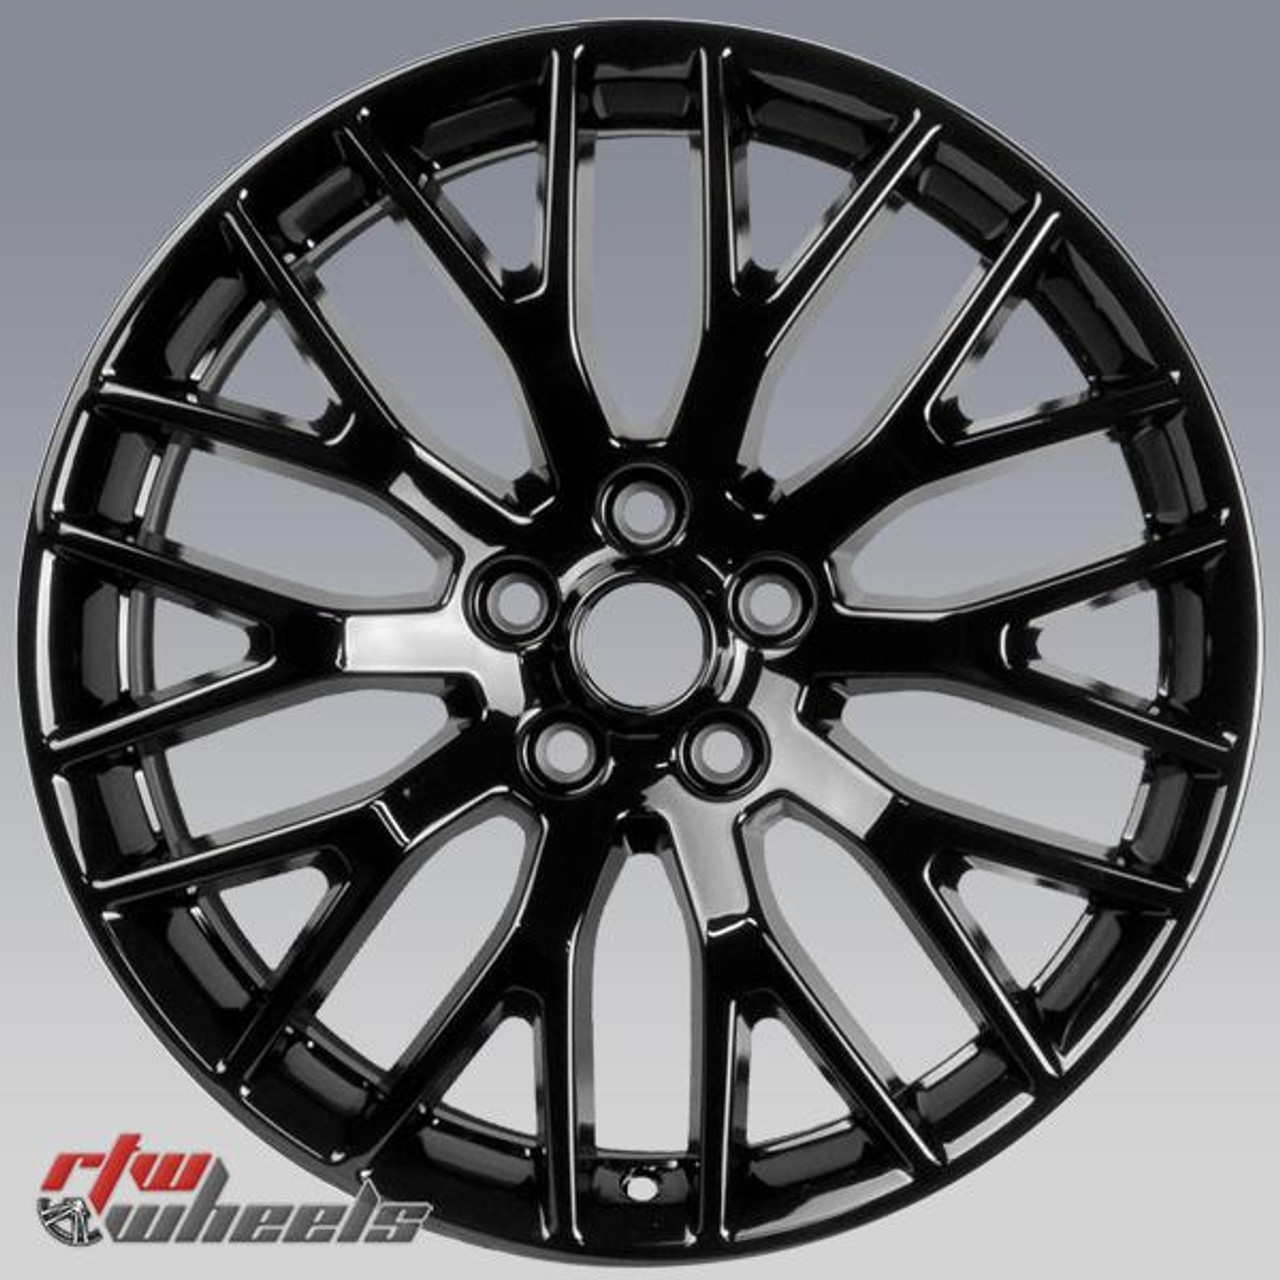 19 Ford Mustang Oem Wheels 2015 2017 Black Alloy Factory Rims 10036